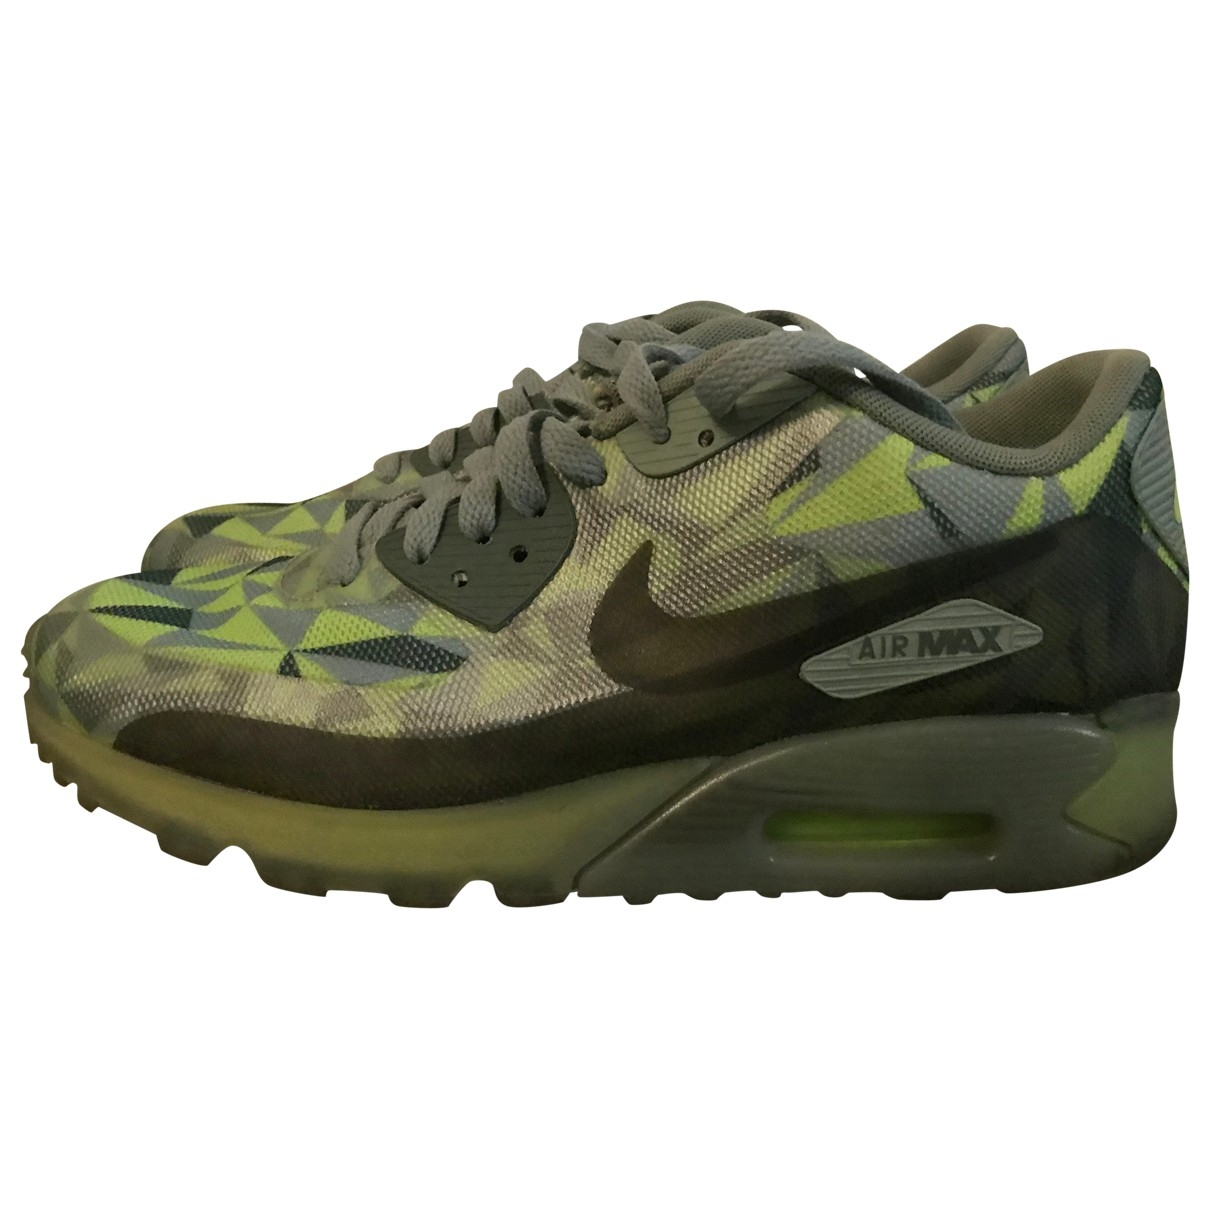 Nike Air Max 90 Green Trainers for Women 40 EU